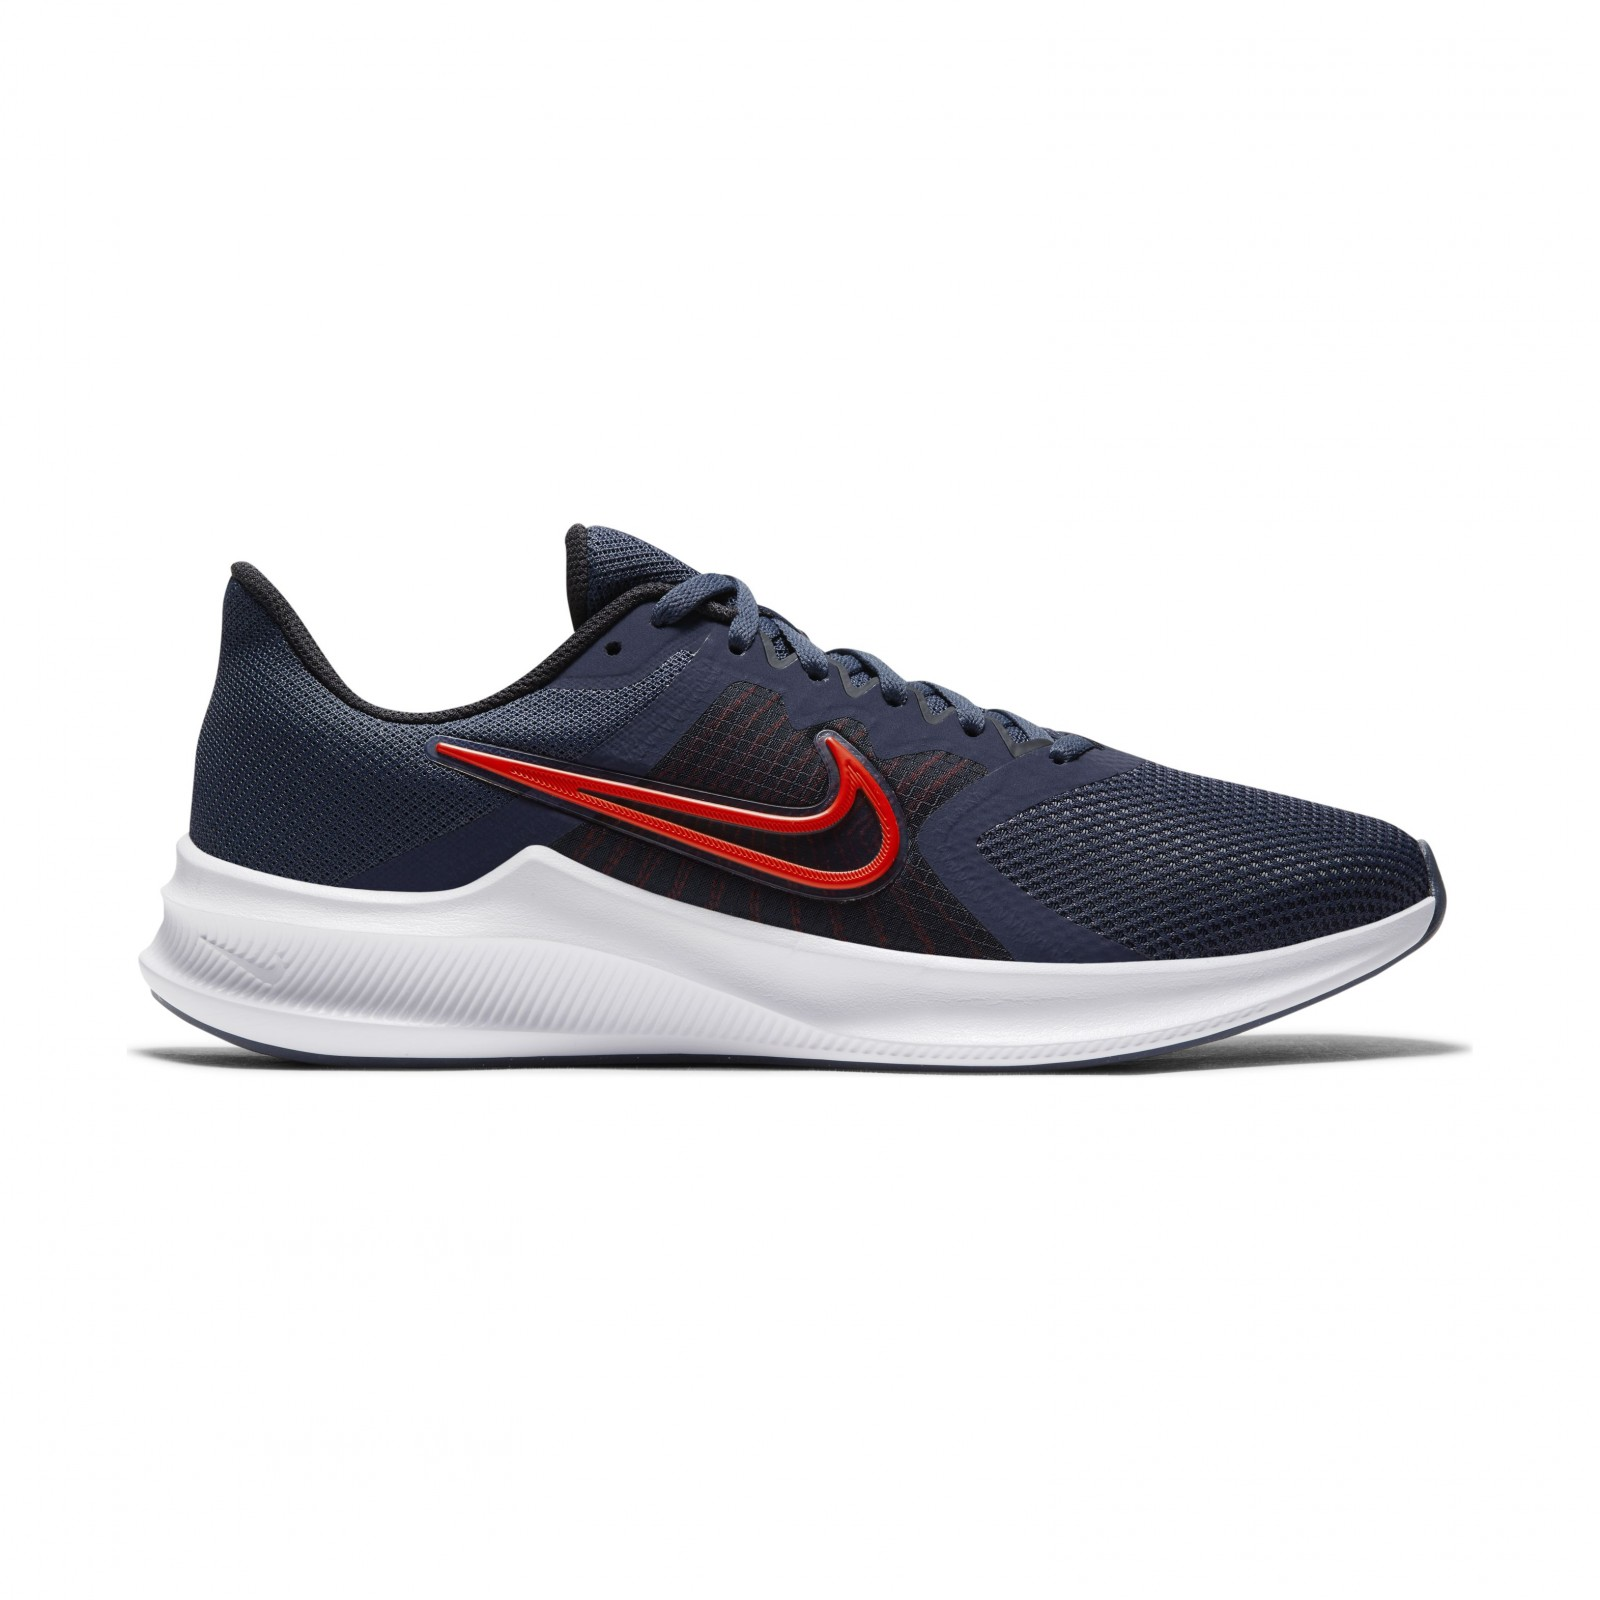 Nike Downshifter 11 THUNDER BLUE/CHILE RED-PURE PLATINUM